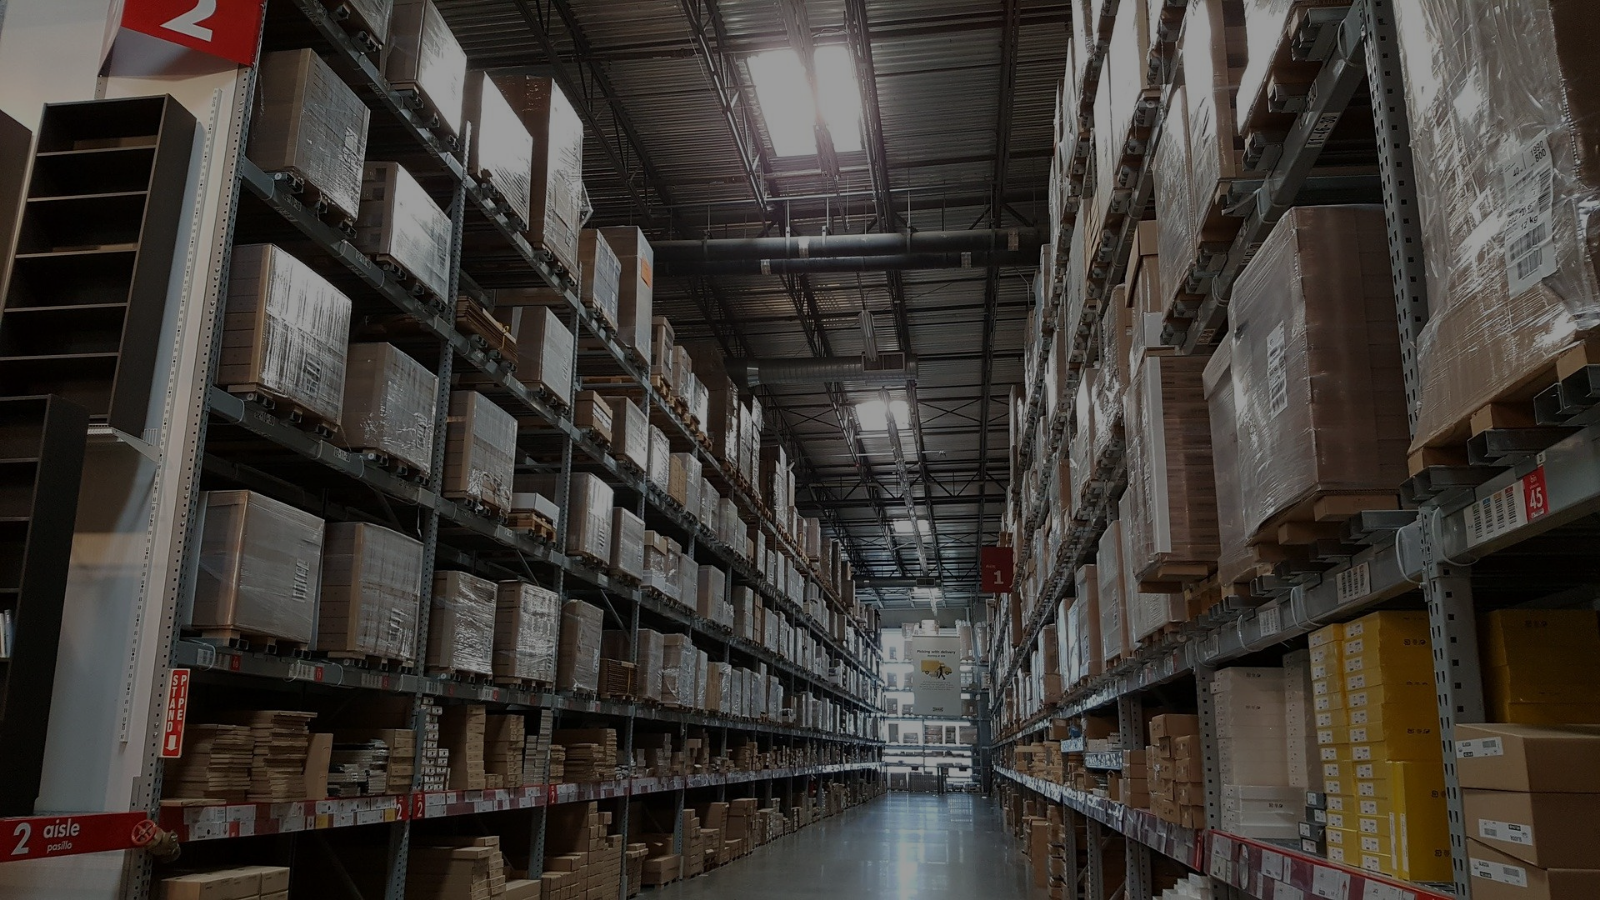 Fire Risk Assessment In Warehouses and Factories